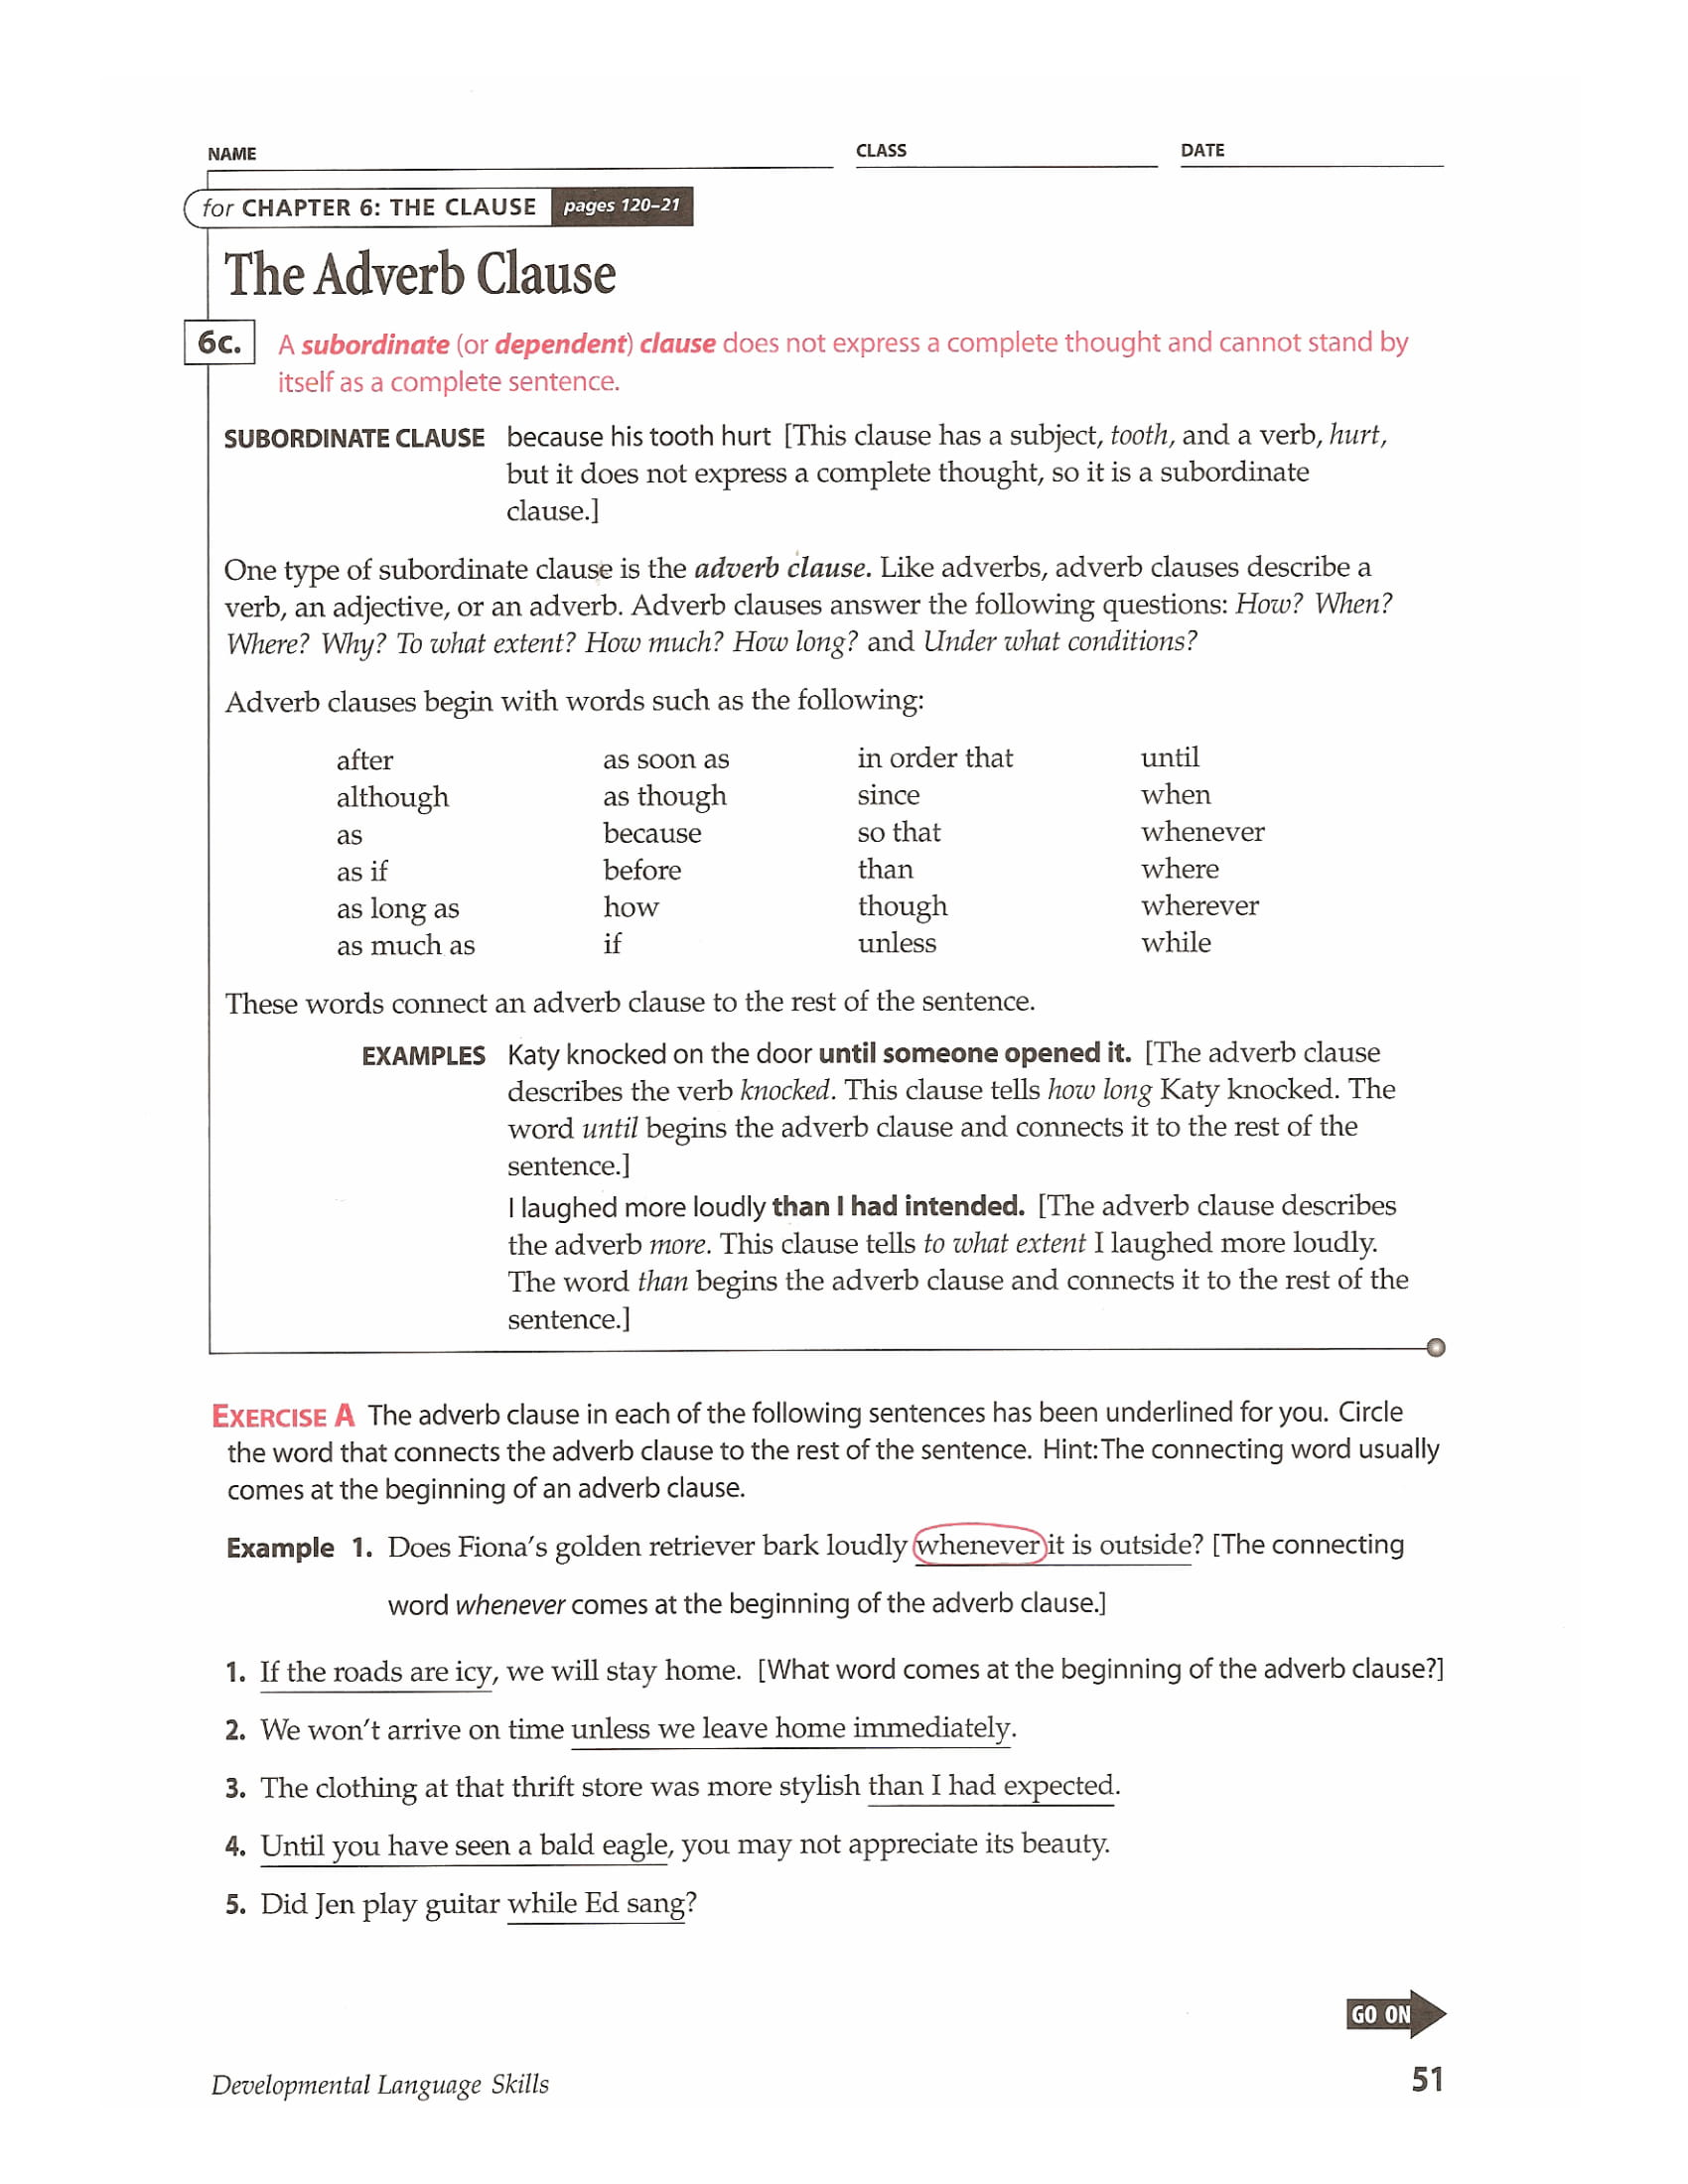 Worksheets Adverb Clause Worksheet Cheatslist Free